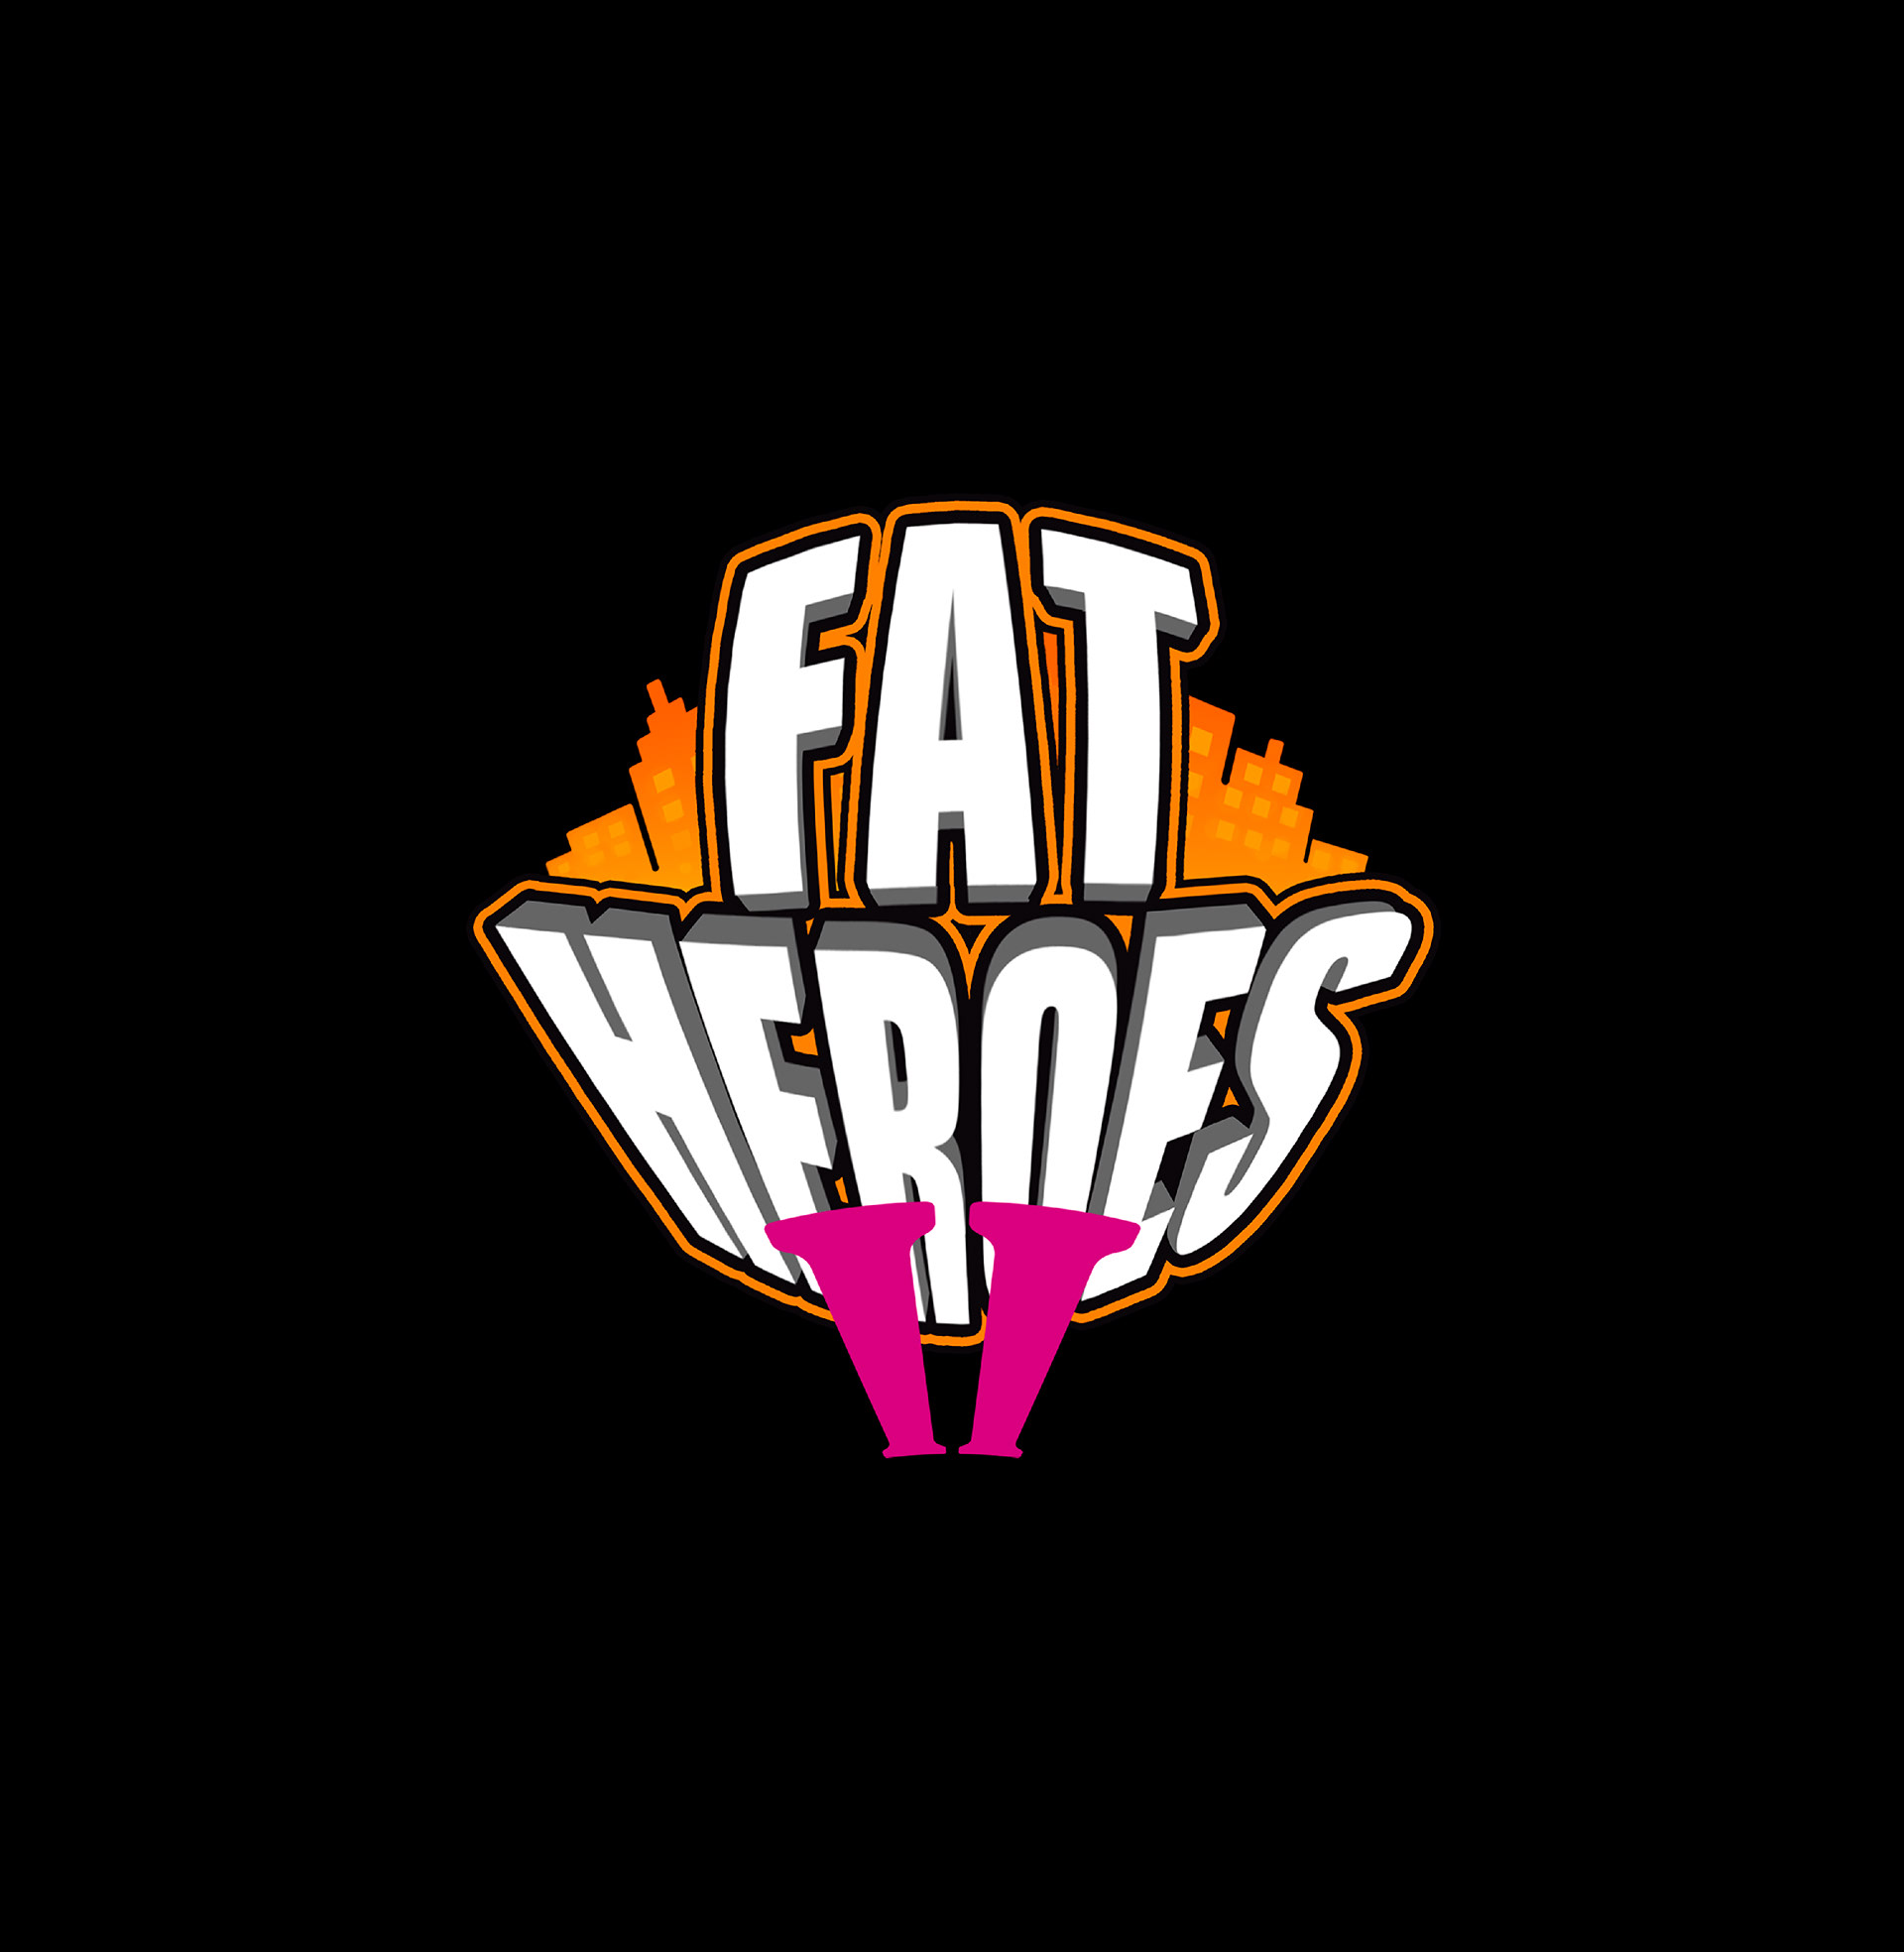 Fat Heroes II Illustration Series